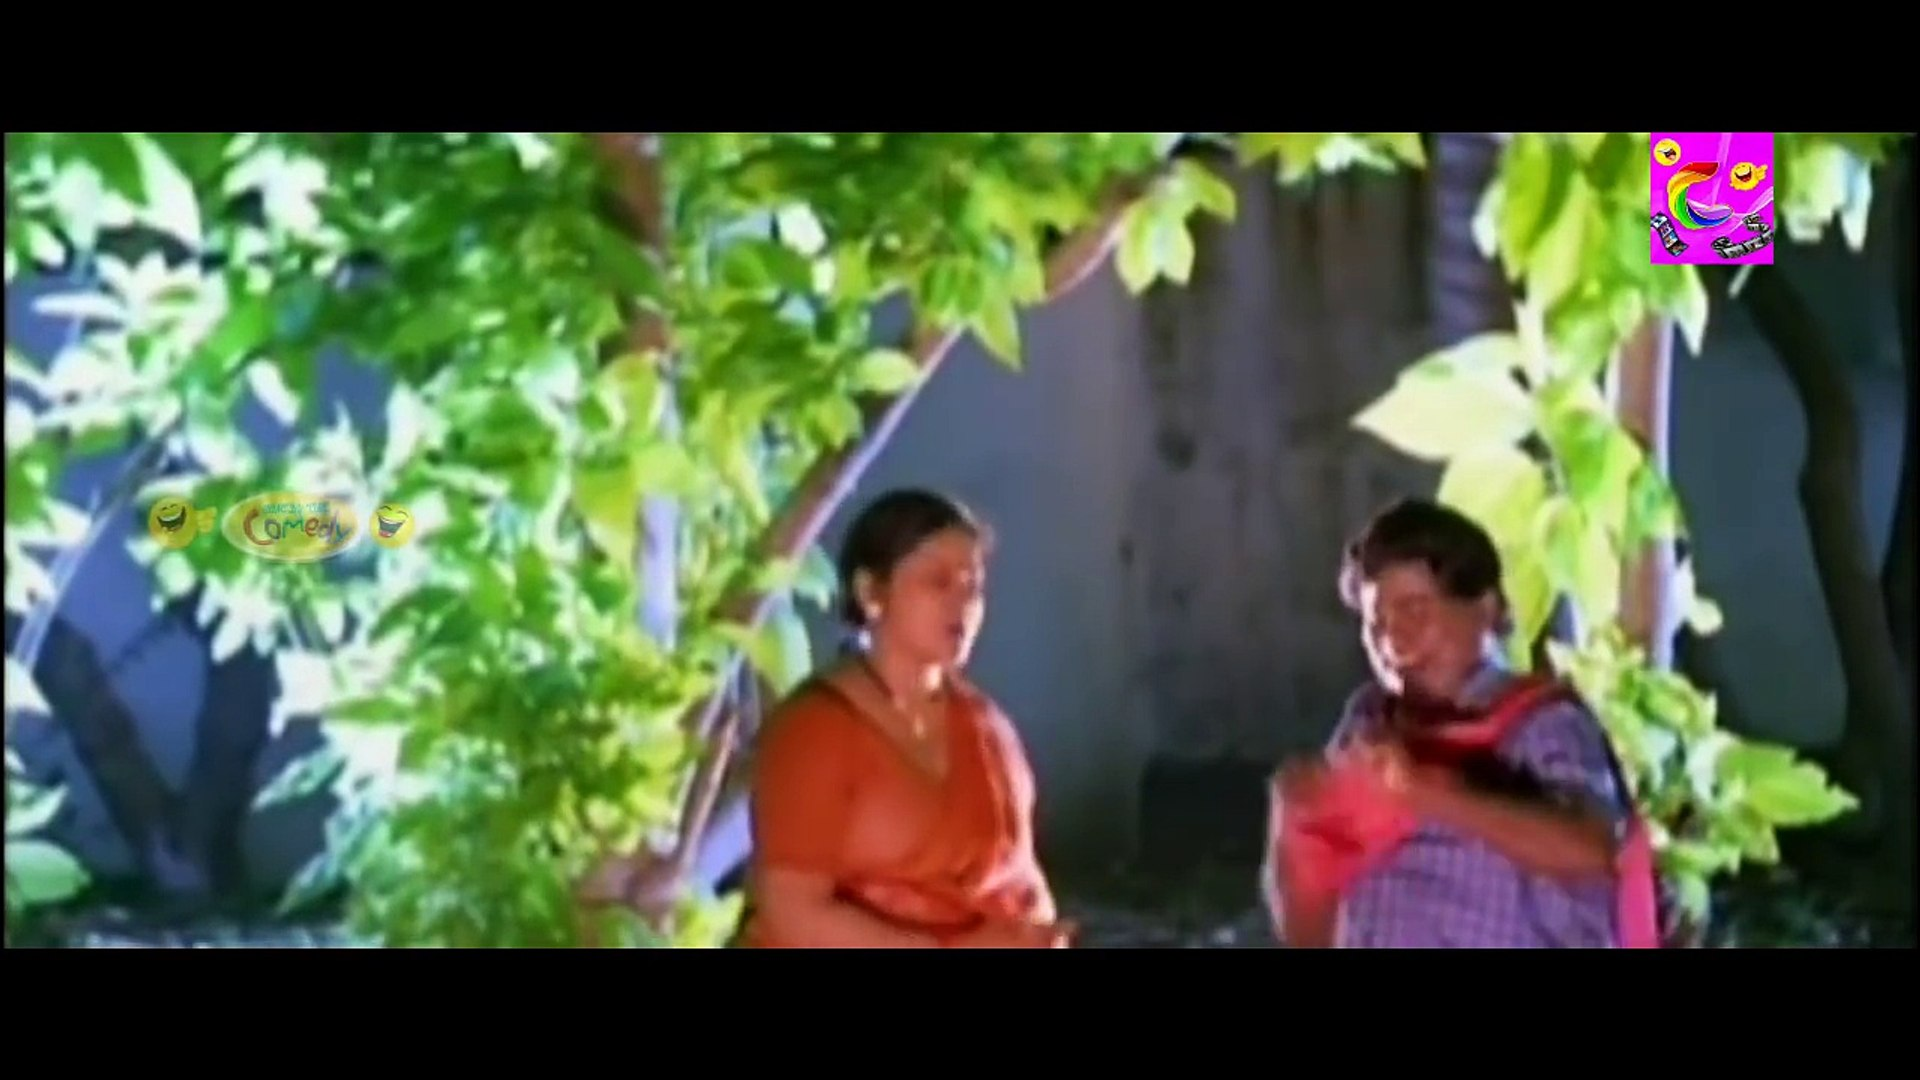 Senthil Very Funny Comedy Video   Tamil Comedy Scenes   Vivek Best Comedy Collection Senthil Best